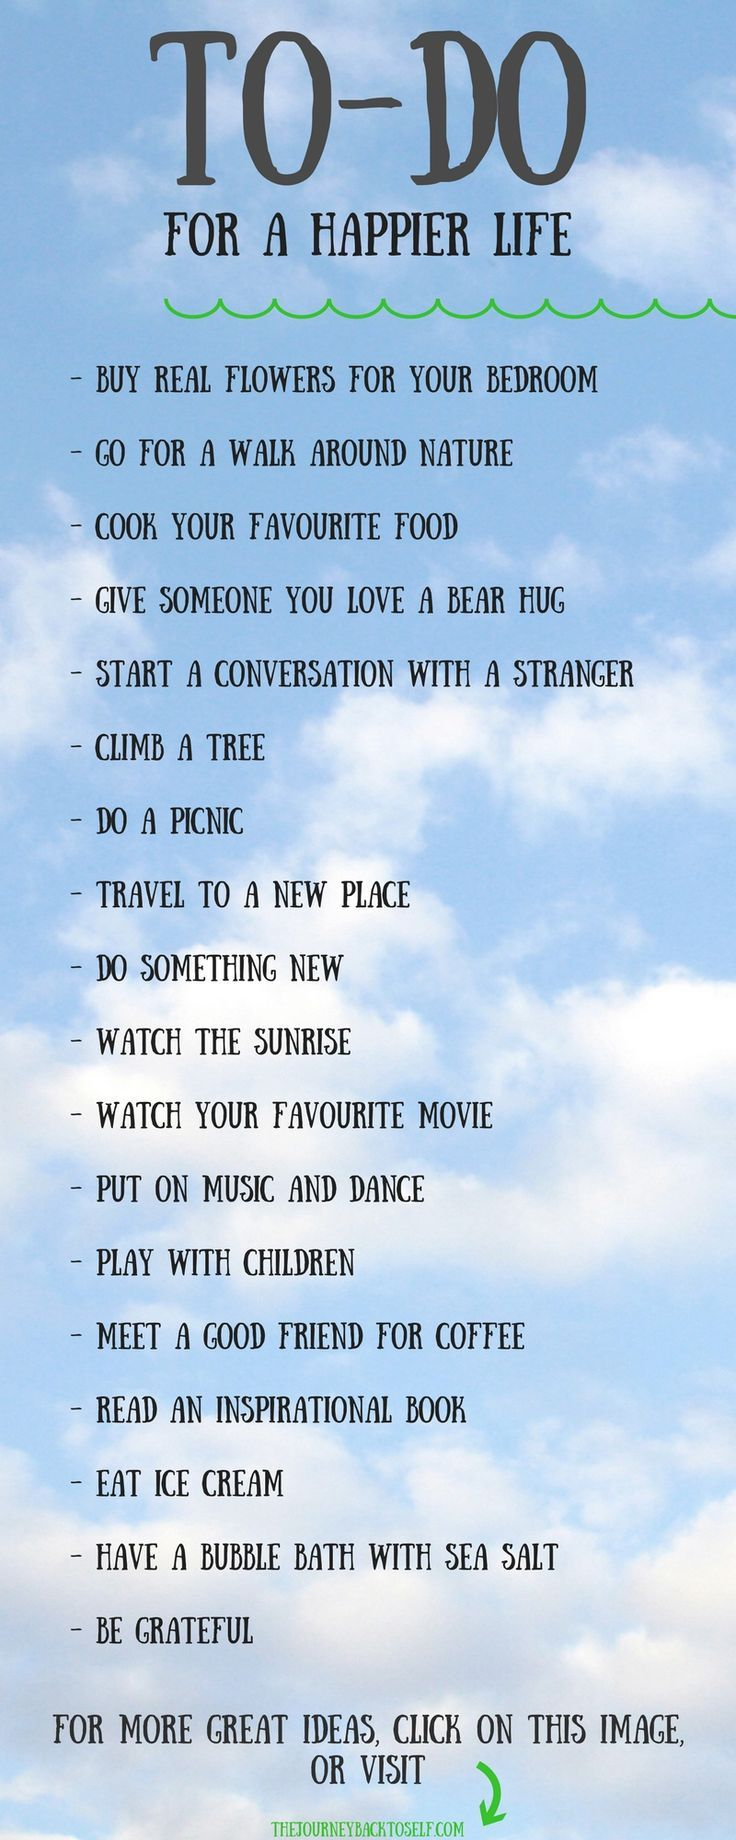 For more great tips, visit: http://www.thejourneybacktoself.com/18-things-to-do-for-a-happier-life/